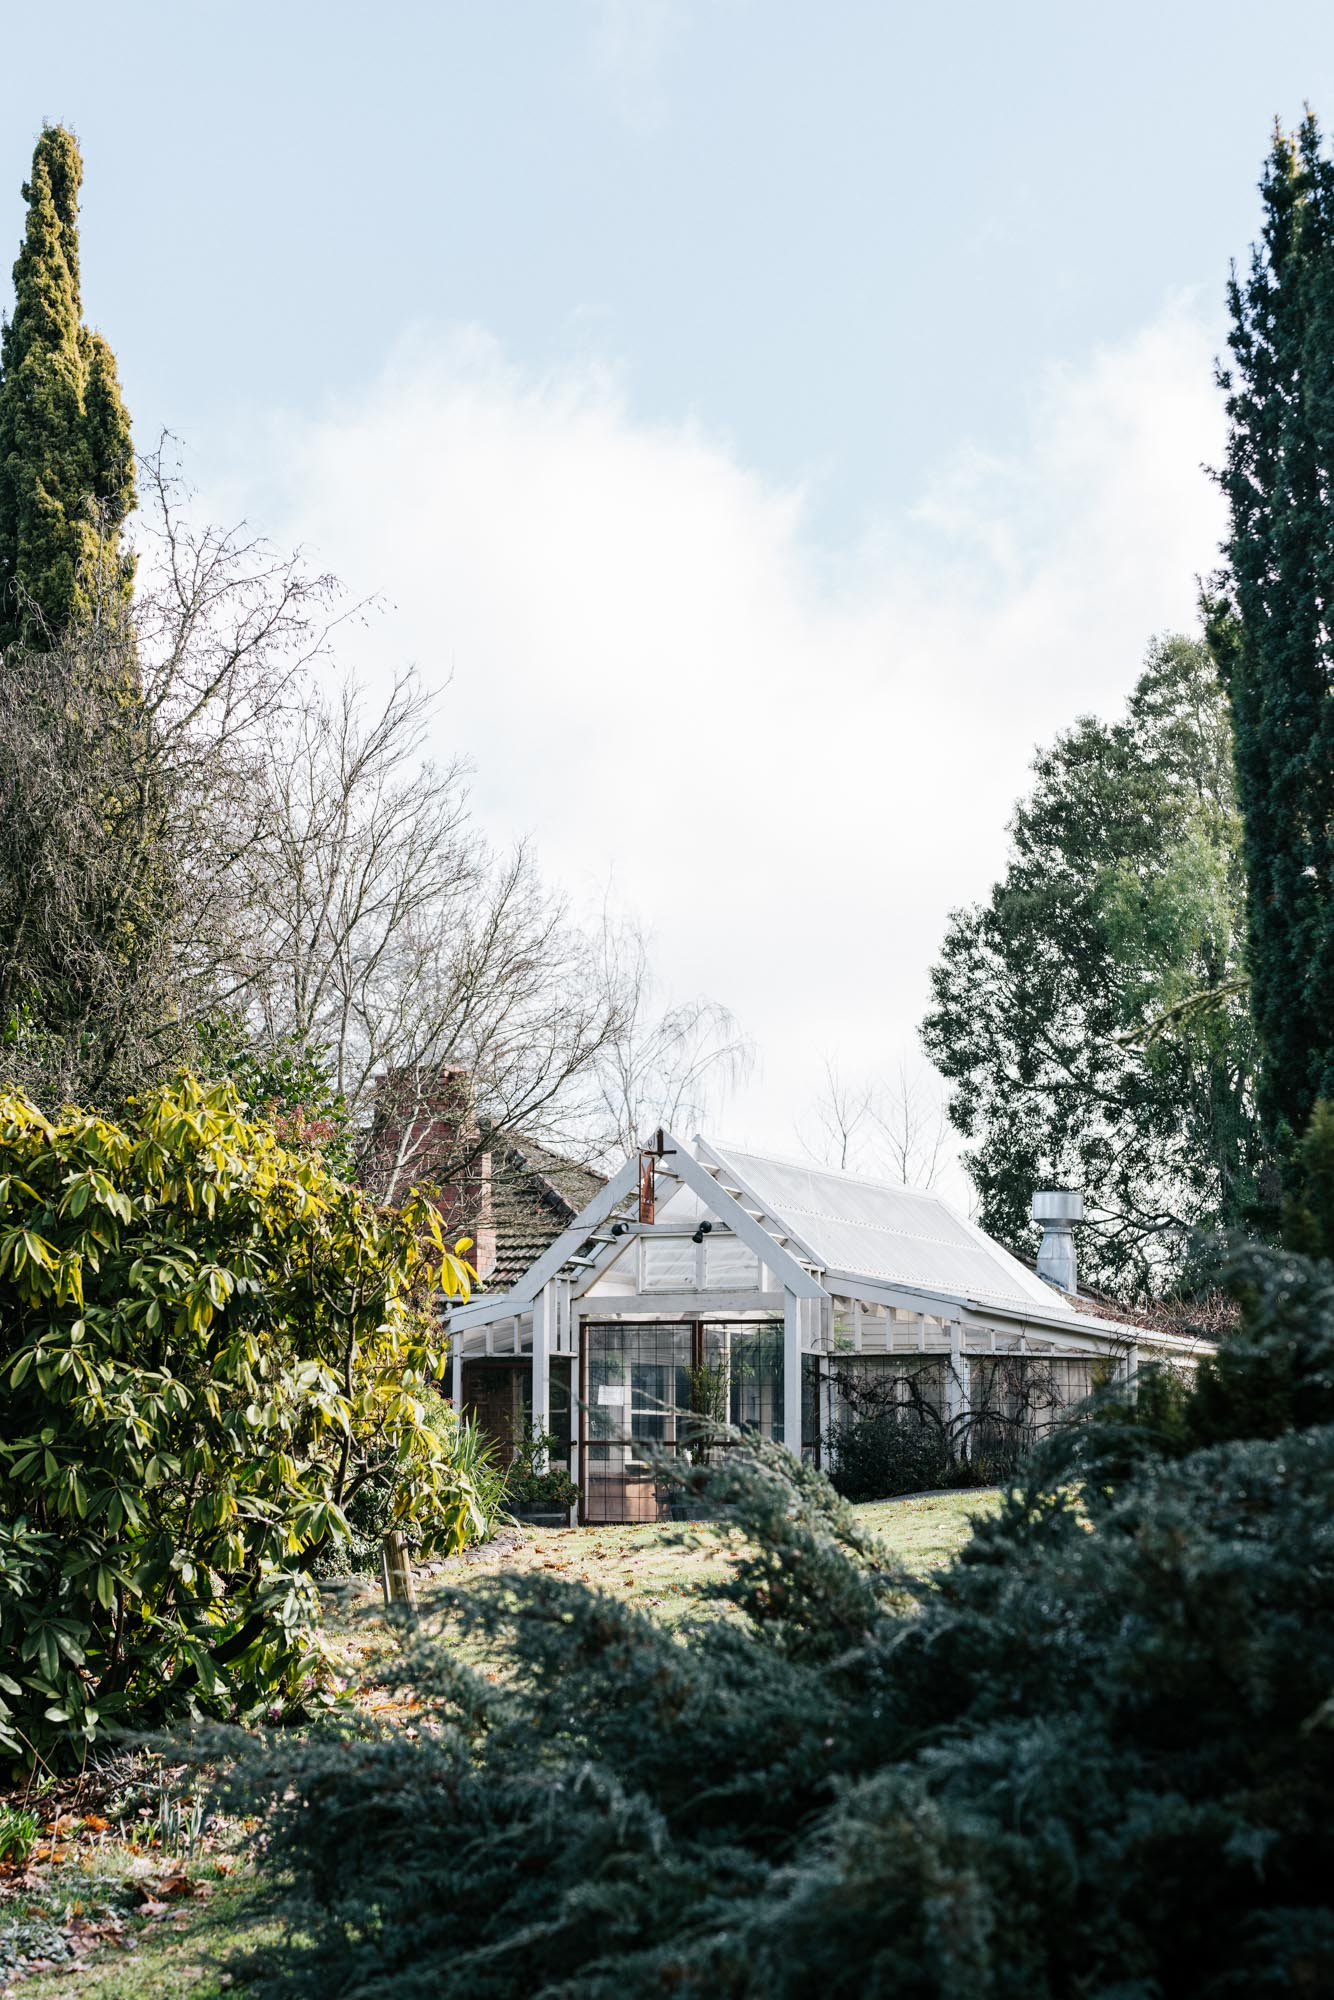 Hunting for truffles in Victoria's Central Highlands for Airbnb , photography by Marnie Hawson.